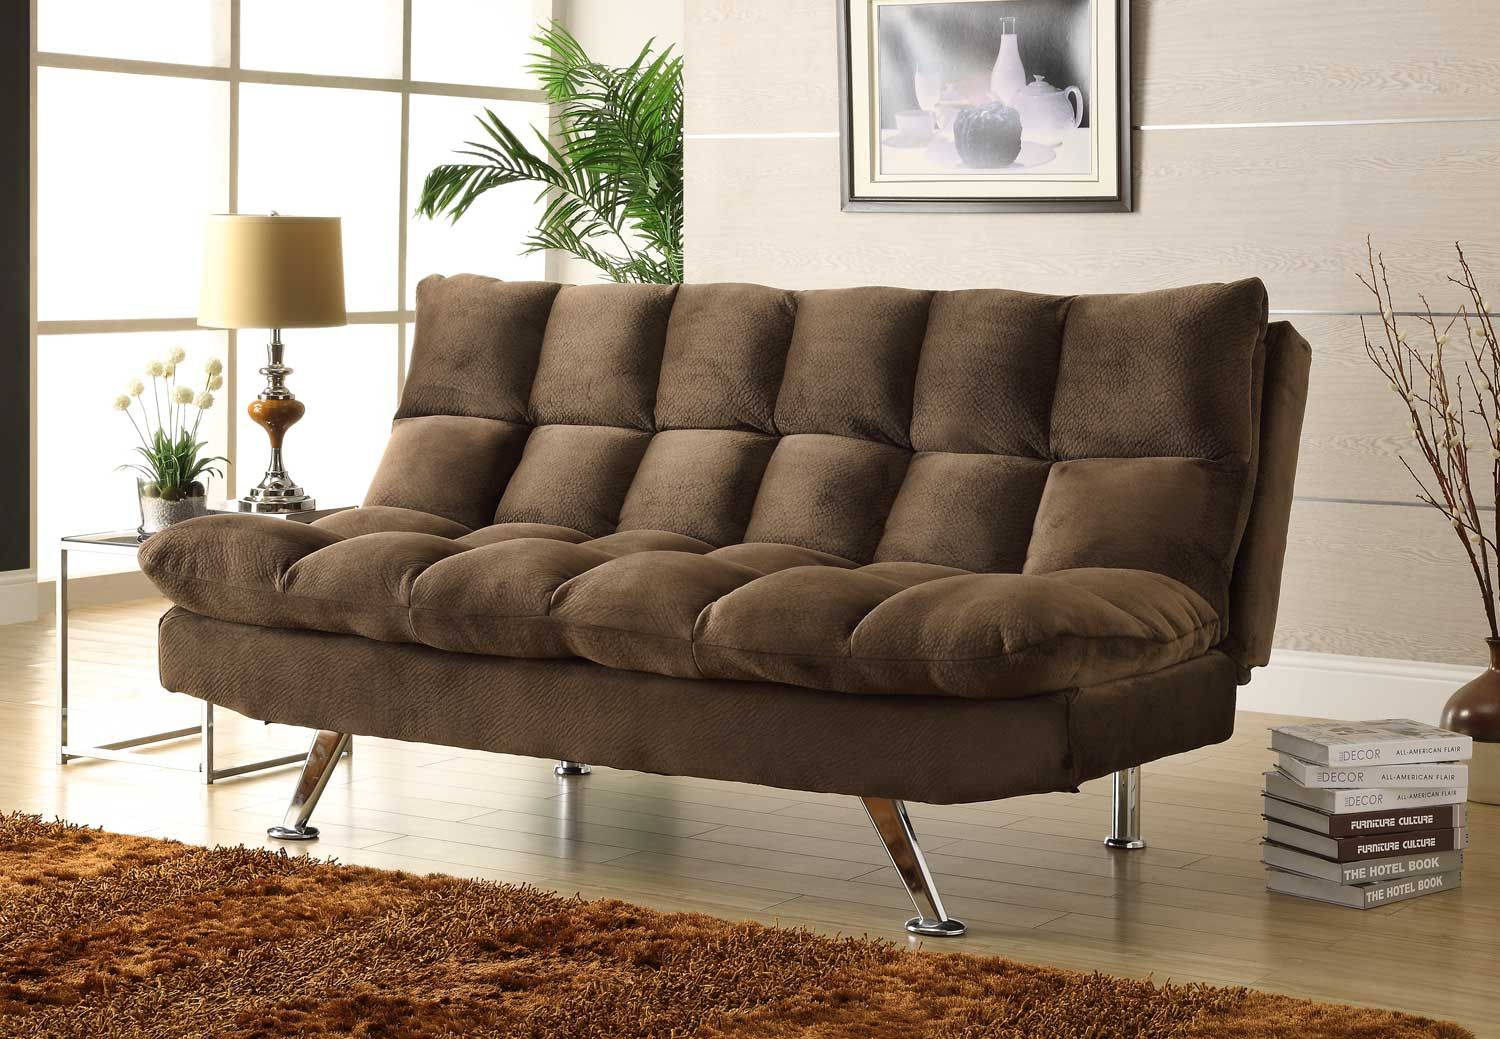 Homelegance jazz click clack sofa bed chocolate textured plush microfiber price 459 00